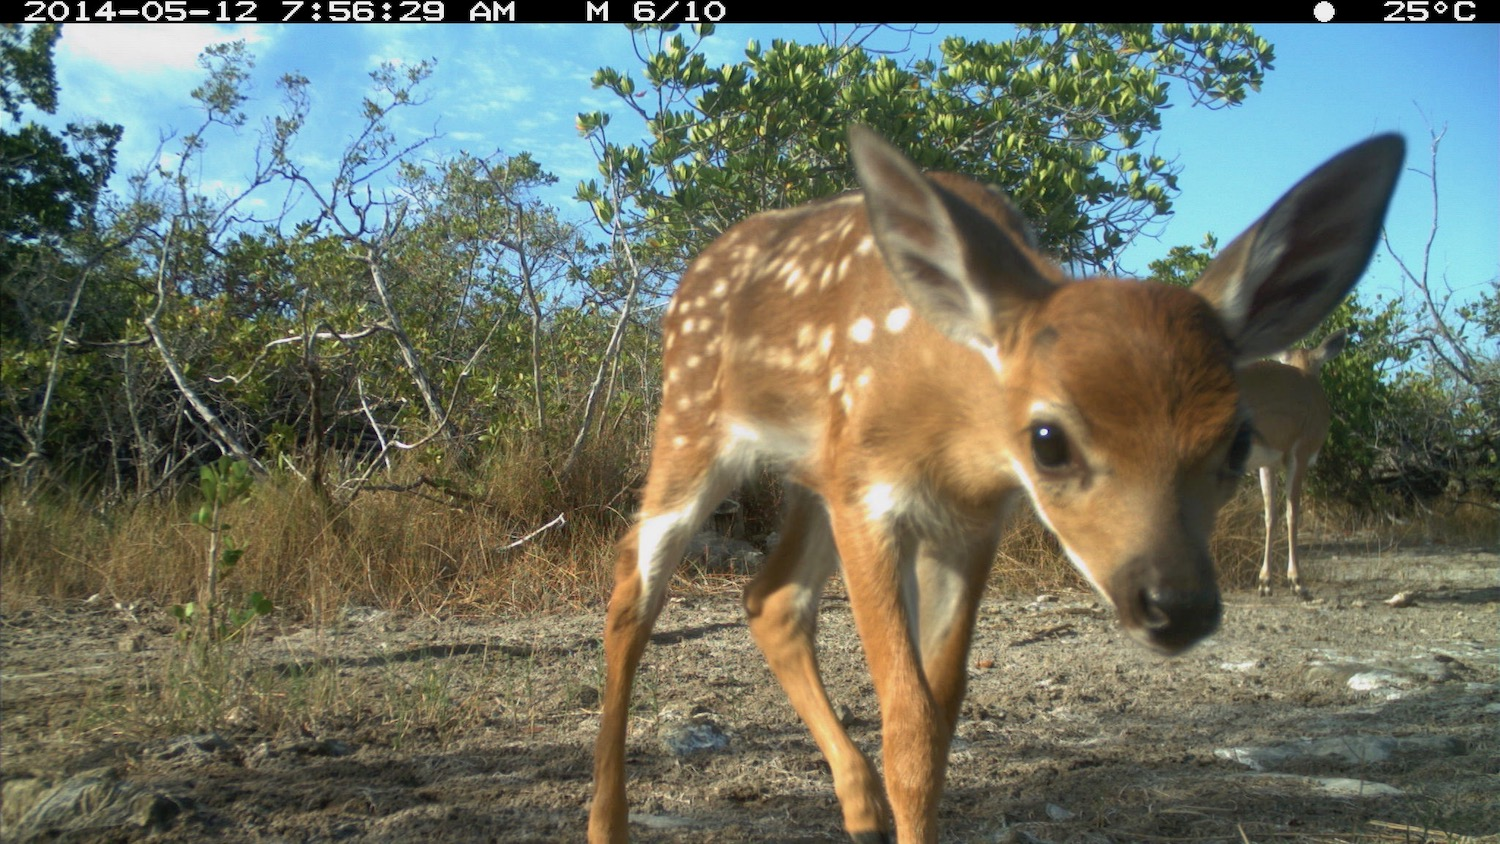 Camera trap image of a fawn Key deer courtesy of Mike Cove.